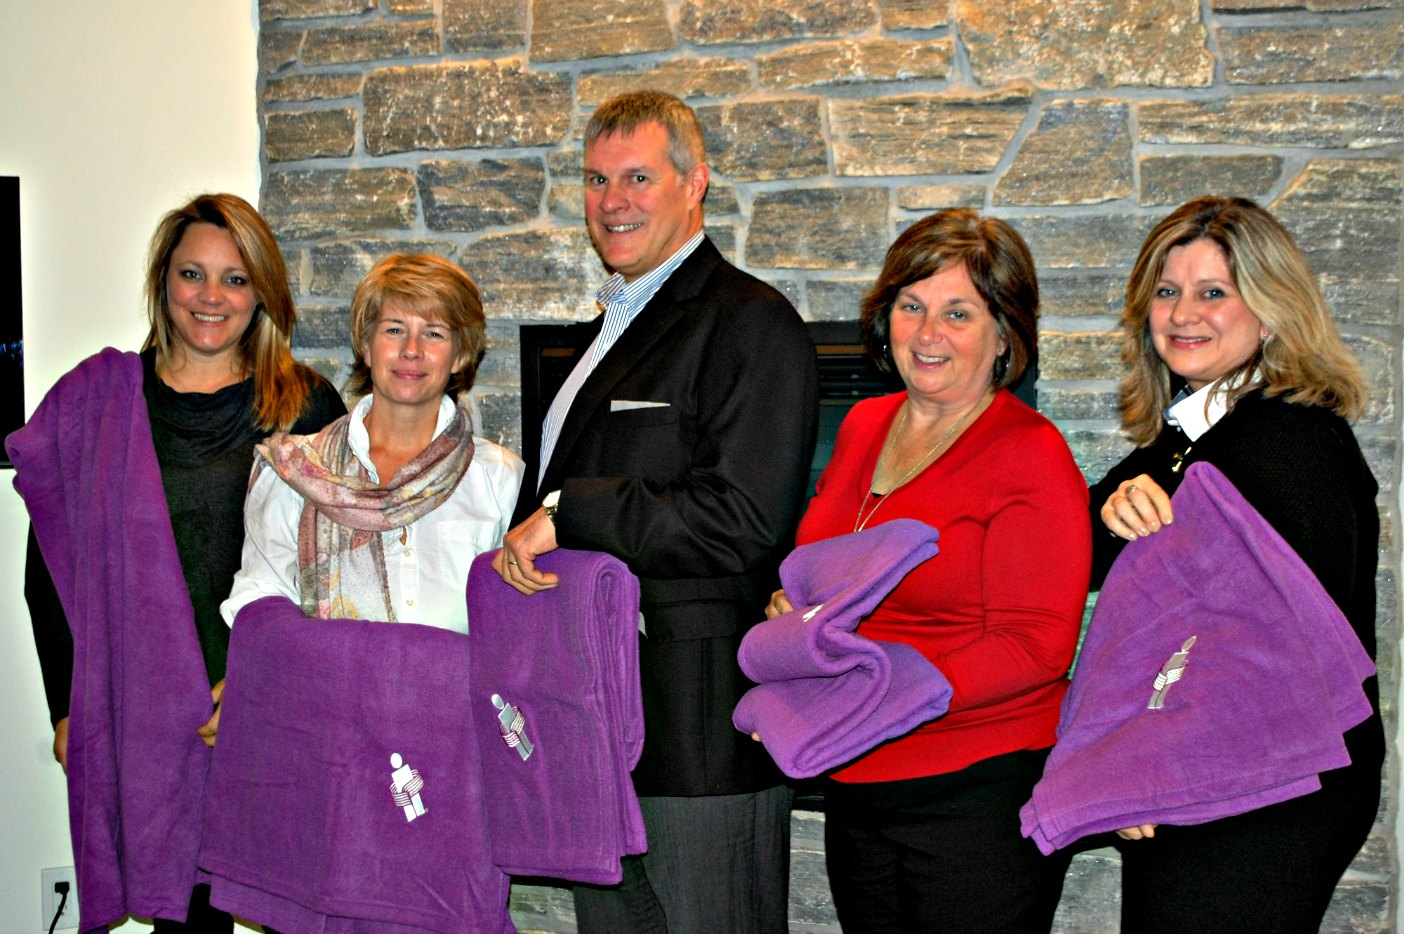 Andrea Hadlington (left), Deane Belfry (centre) and Karen Armstrong (right) present blankets to Melissa Polischuk and Bev Lashbrook from Hospice Huntsville